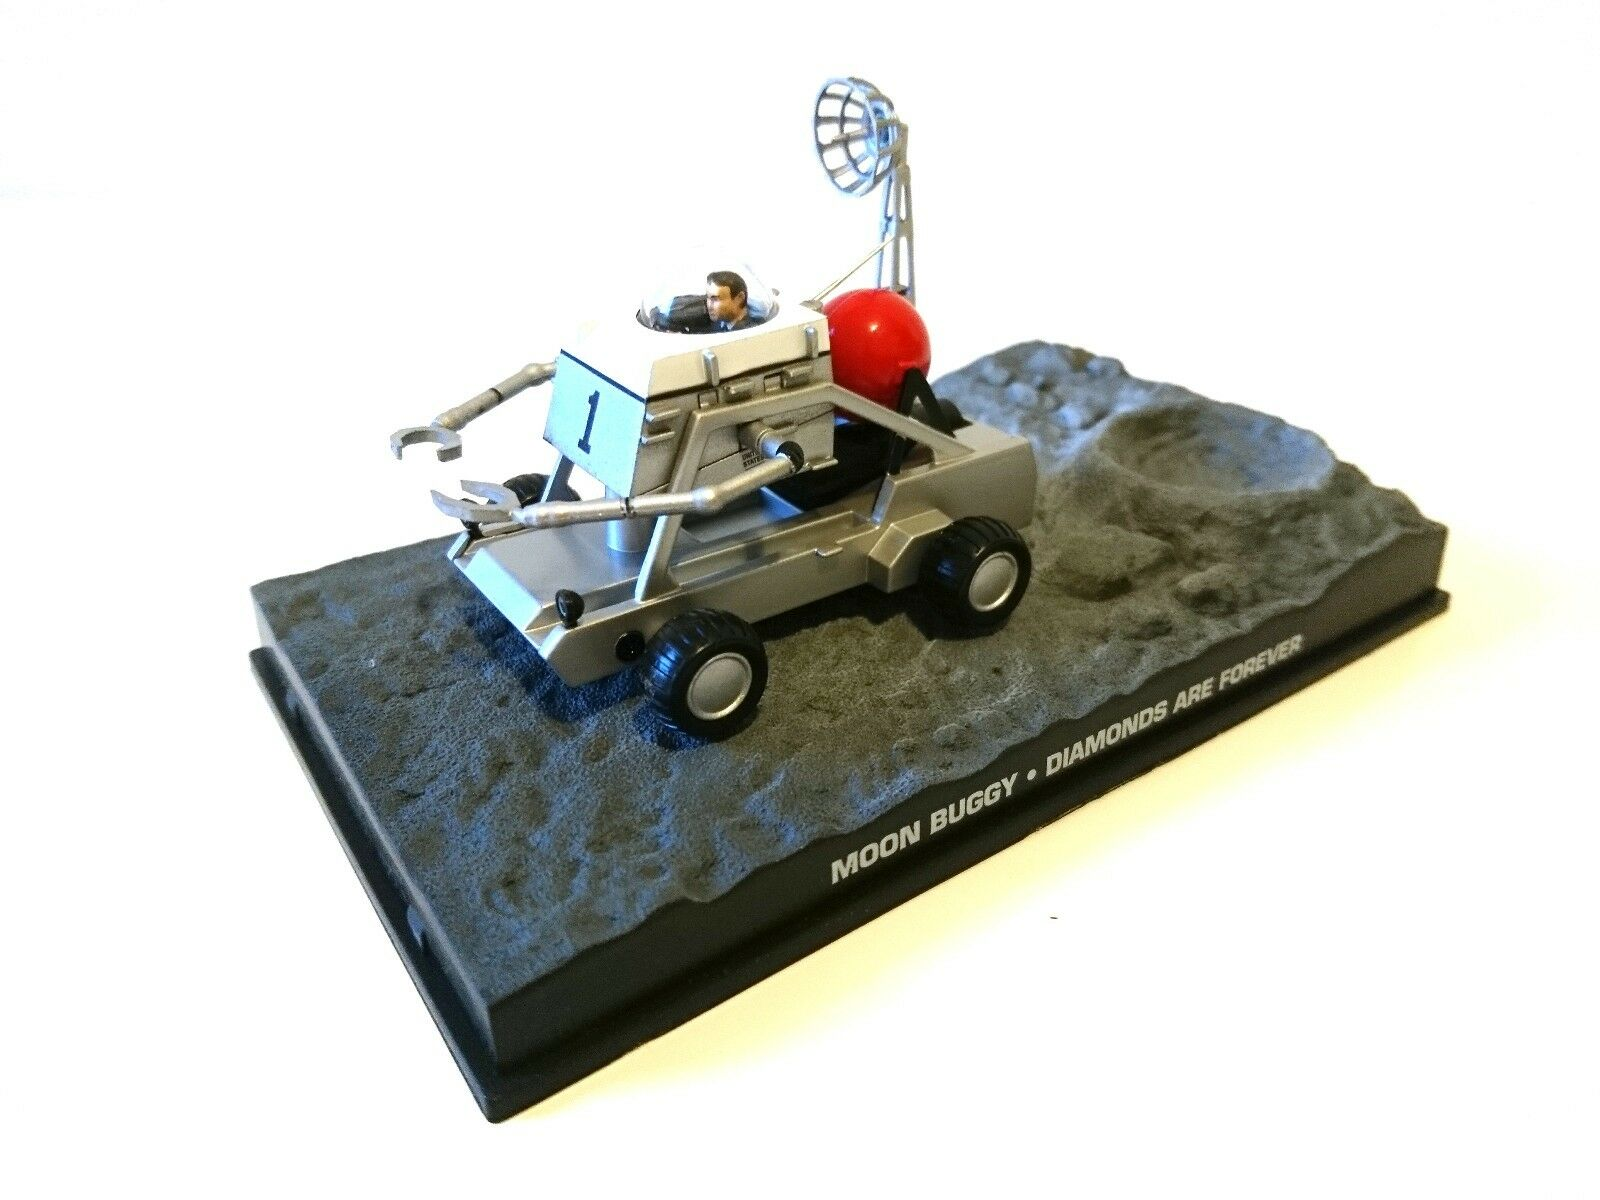 MOON BUGGY JAMES BOND 007 Diamonds are Forever 1 43 IXO AUTO MODEL